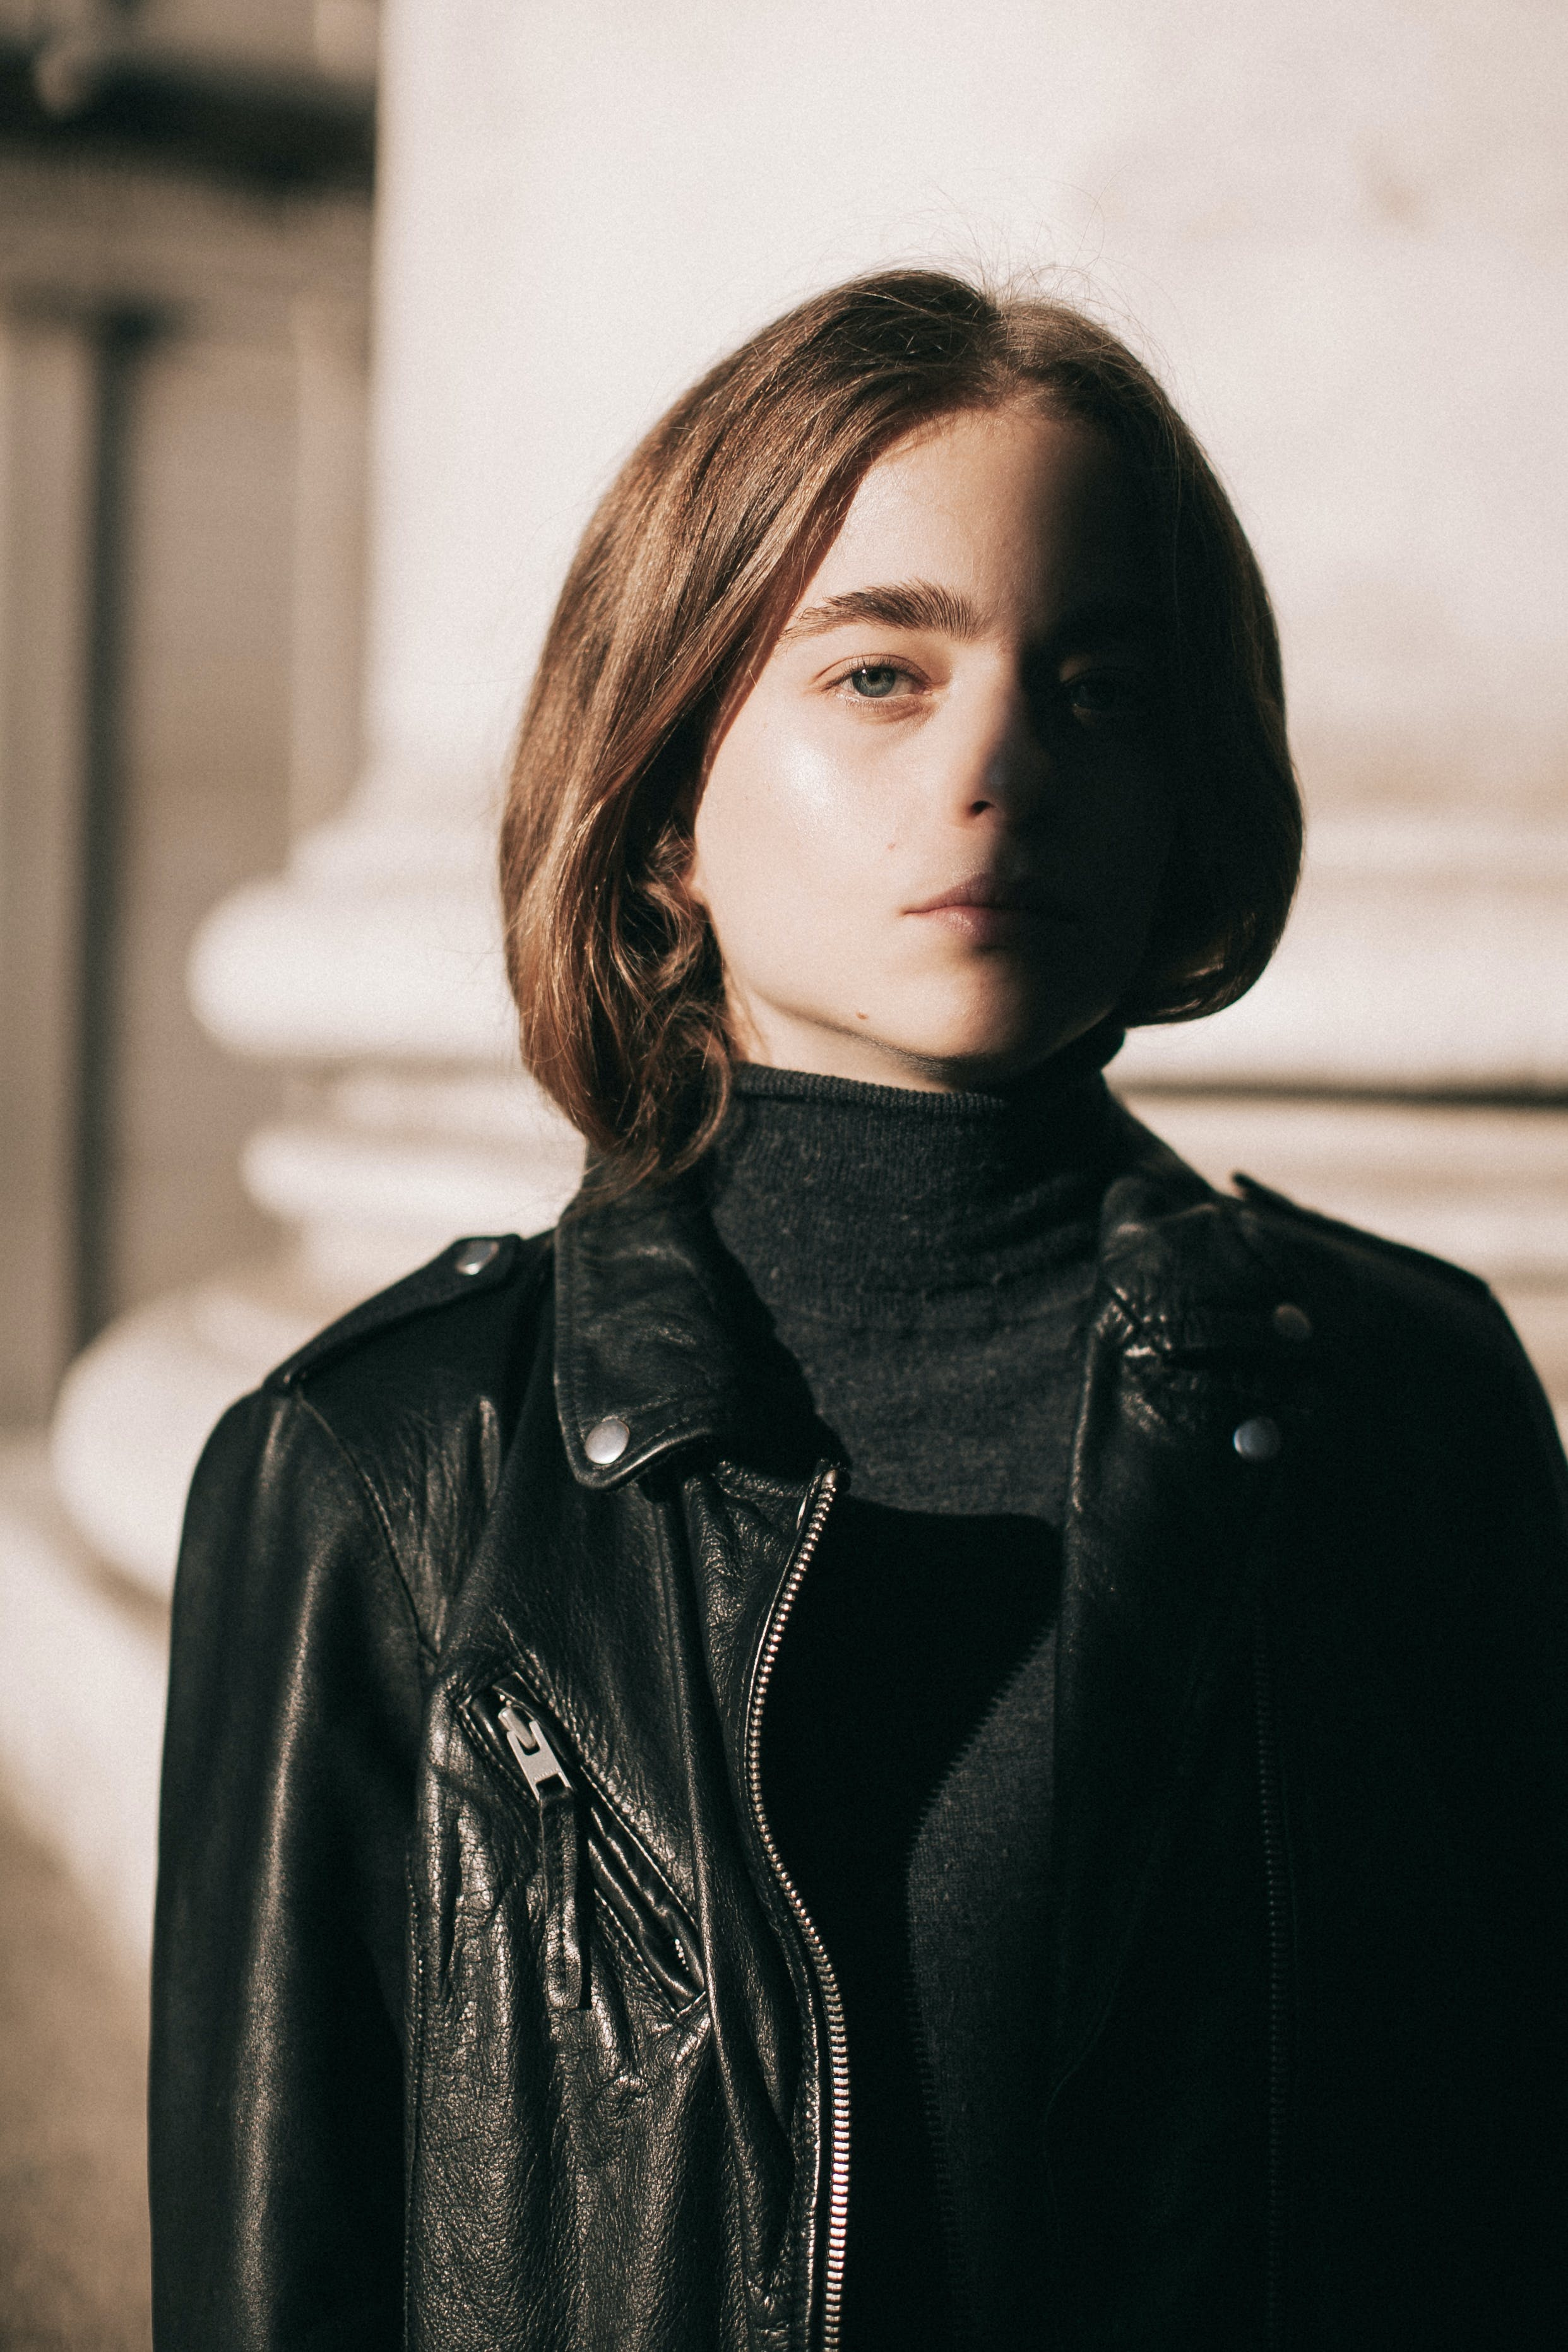 Close-Up Photo of Woman Wearing Leather Jacket